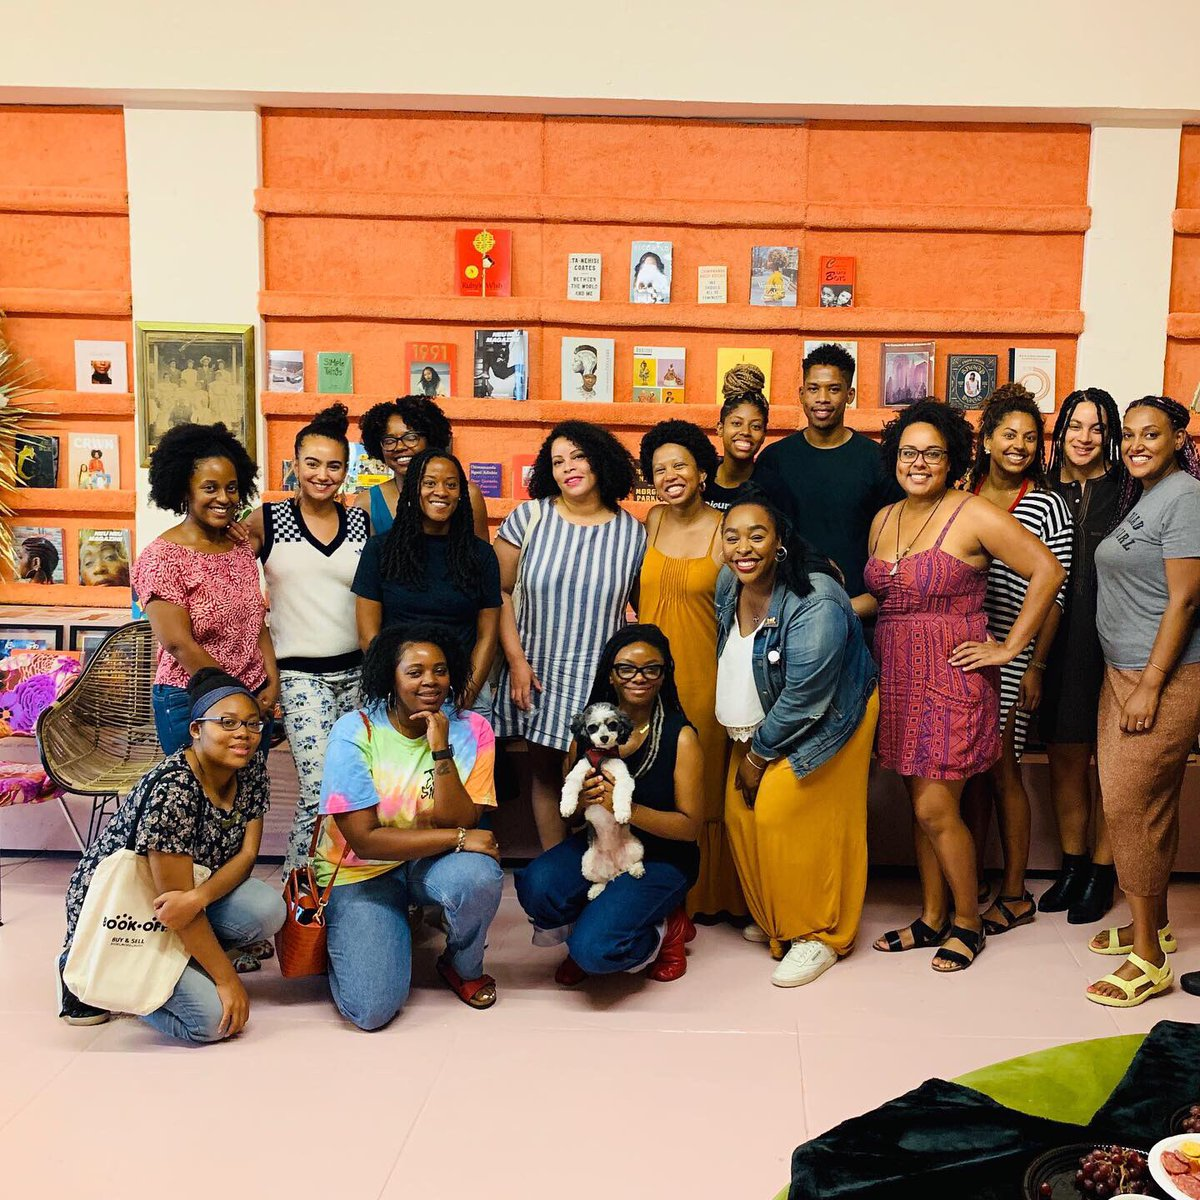 I'm still on a high from this weekend! Our #wellreadblackgirl meet-up was amazing. Huge thank you to reparations.club. Do you live in LA? Join the monthly gatherings on the 2nd Sunday of every month at @booksoup in West Hollywood. Ask for our #WRBG lead Tameka! ✨📖❤️